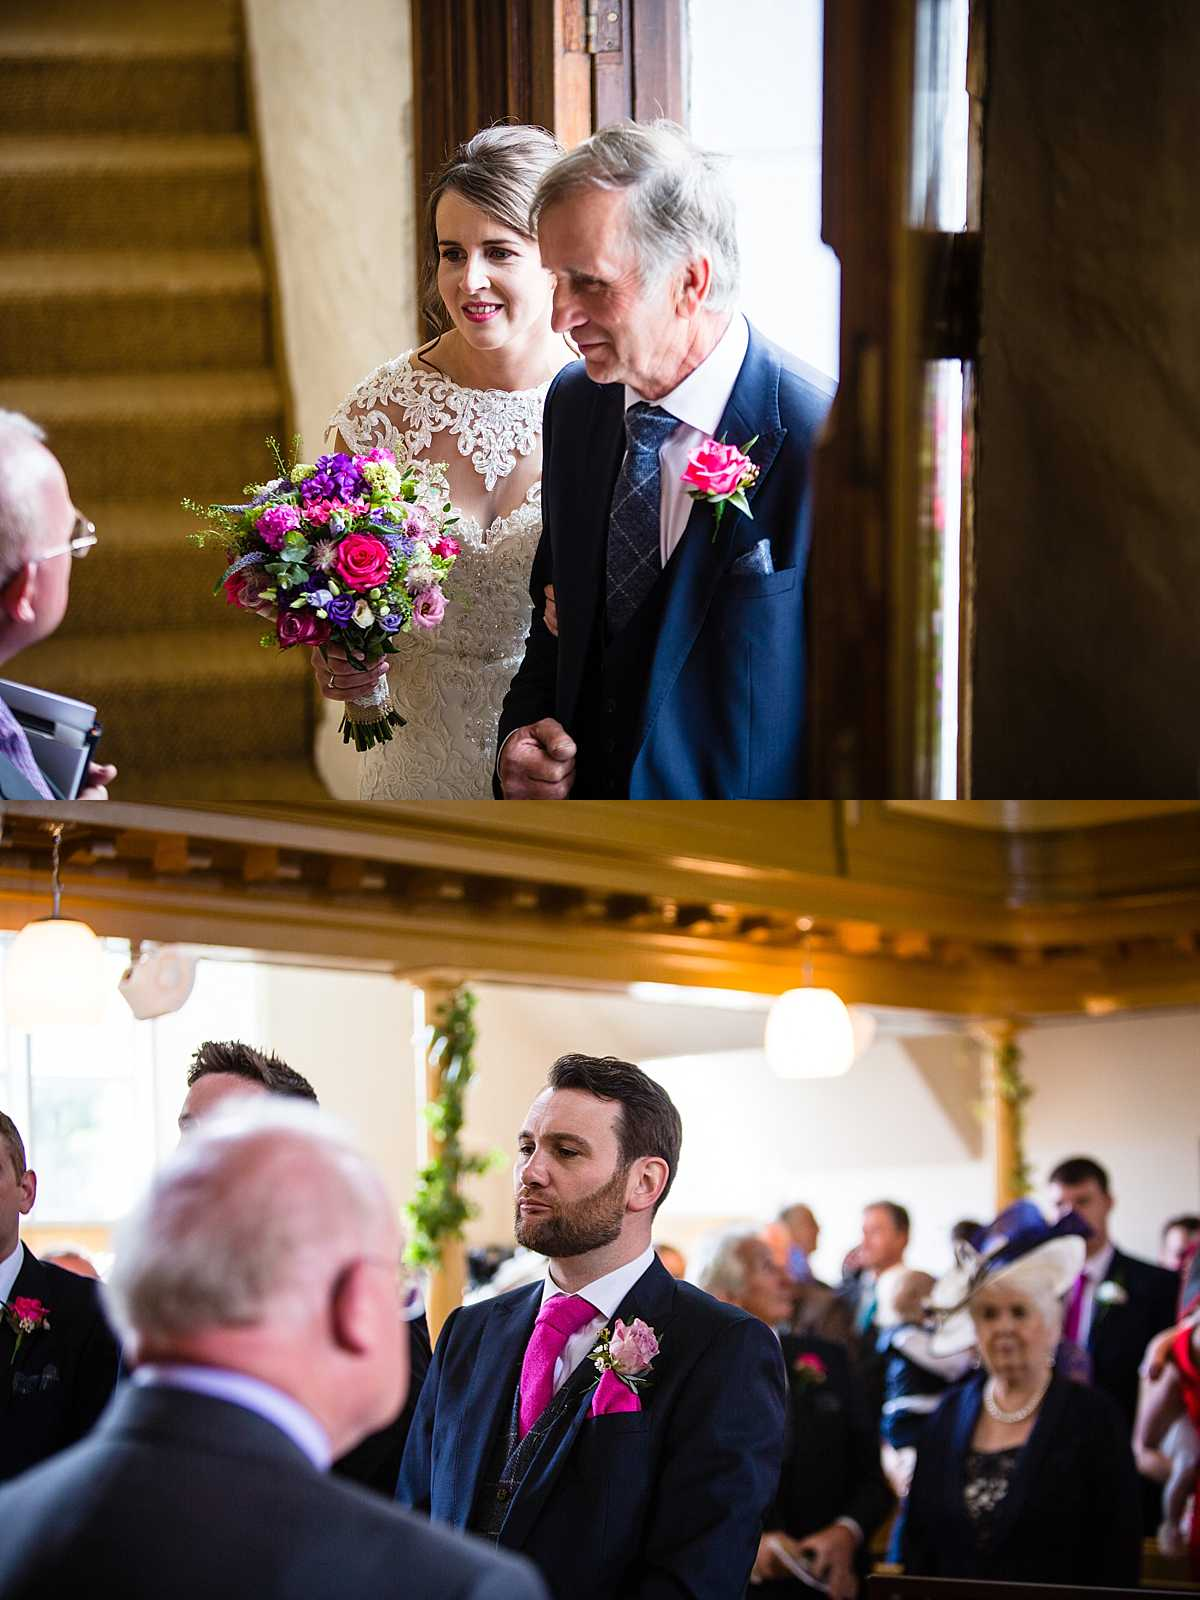 bride and father of the bride about to walk into church and the groom waiting at the alter with a concentrating face